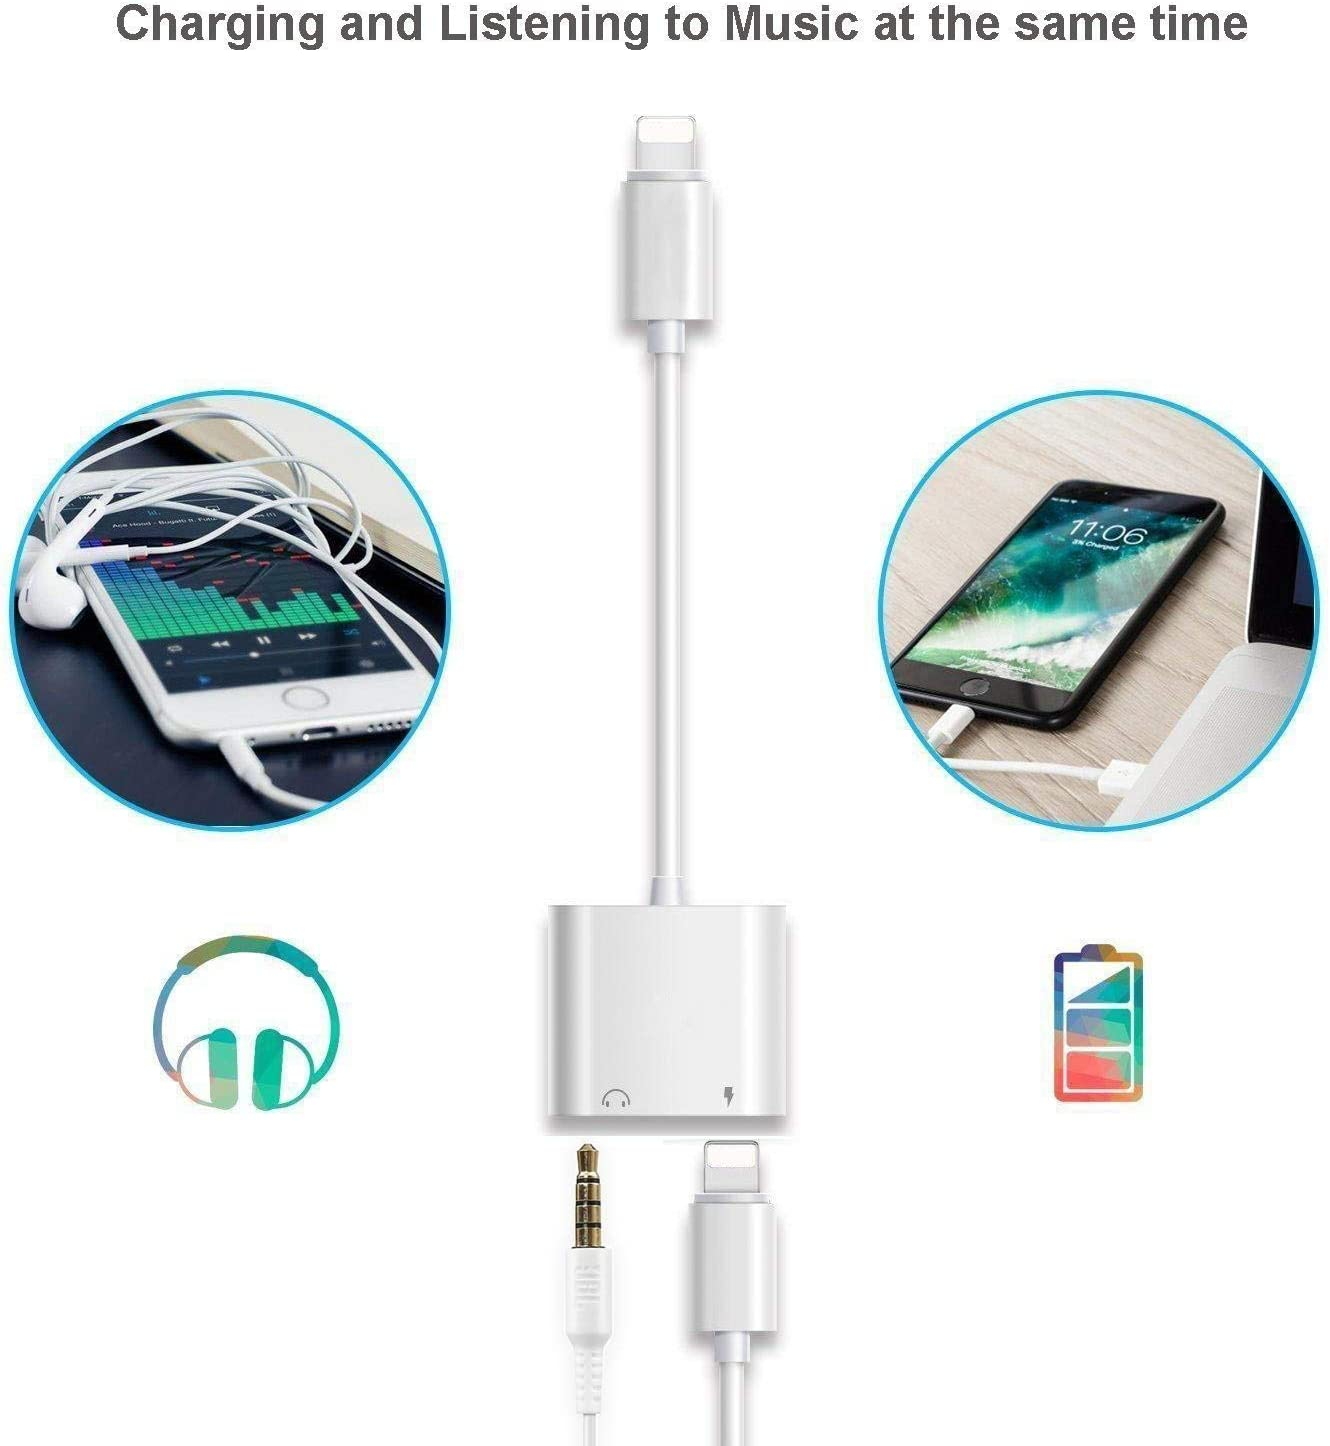 Headphone Adapter for iPhone 12 Adapter to 3.5mm AUX Audio Adapter Jack Cable Splitter for iPhone 7//7 Plus//8//8 Plus//X//XR//XS//XS Max//11//12 3.5mm Earphone Connector Dongle Support for All iOS Systems